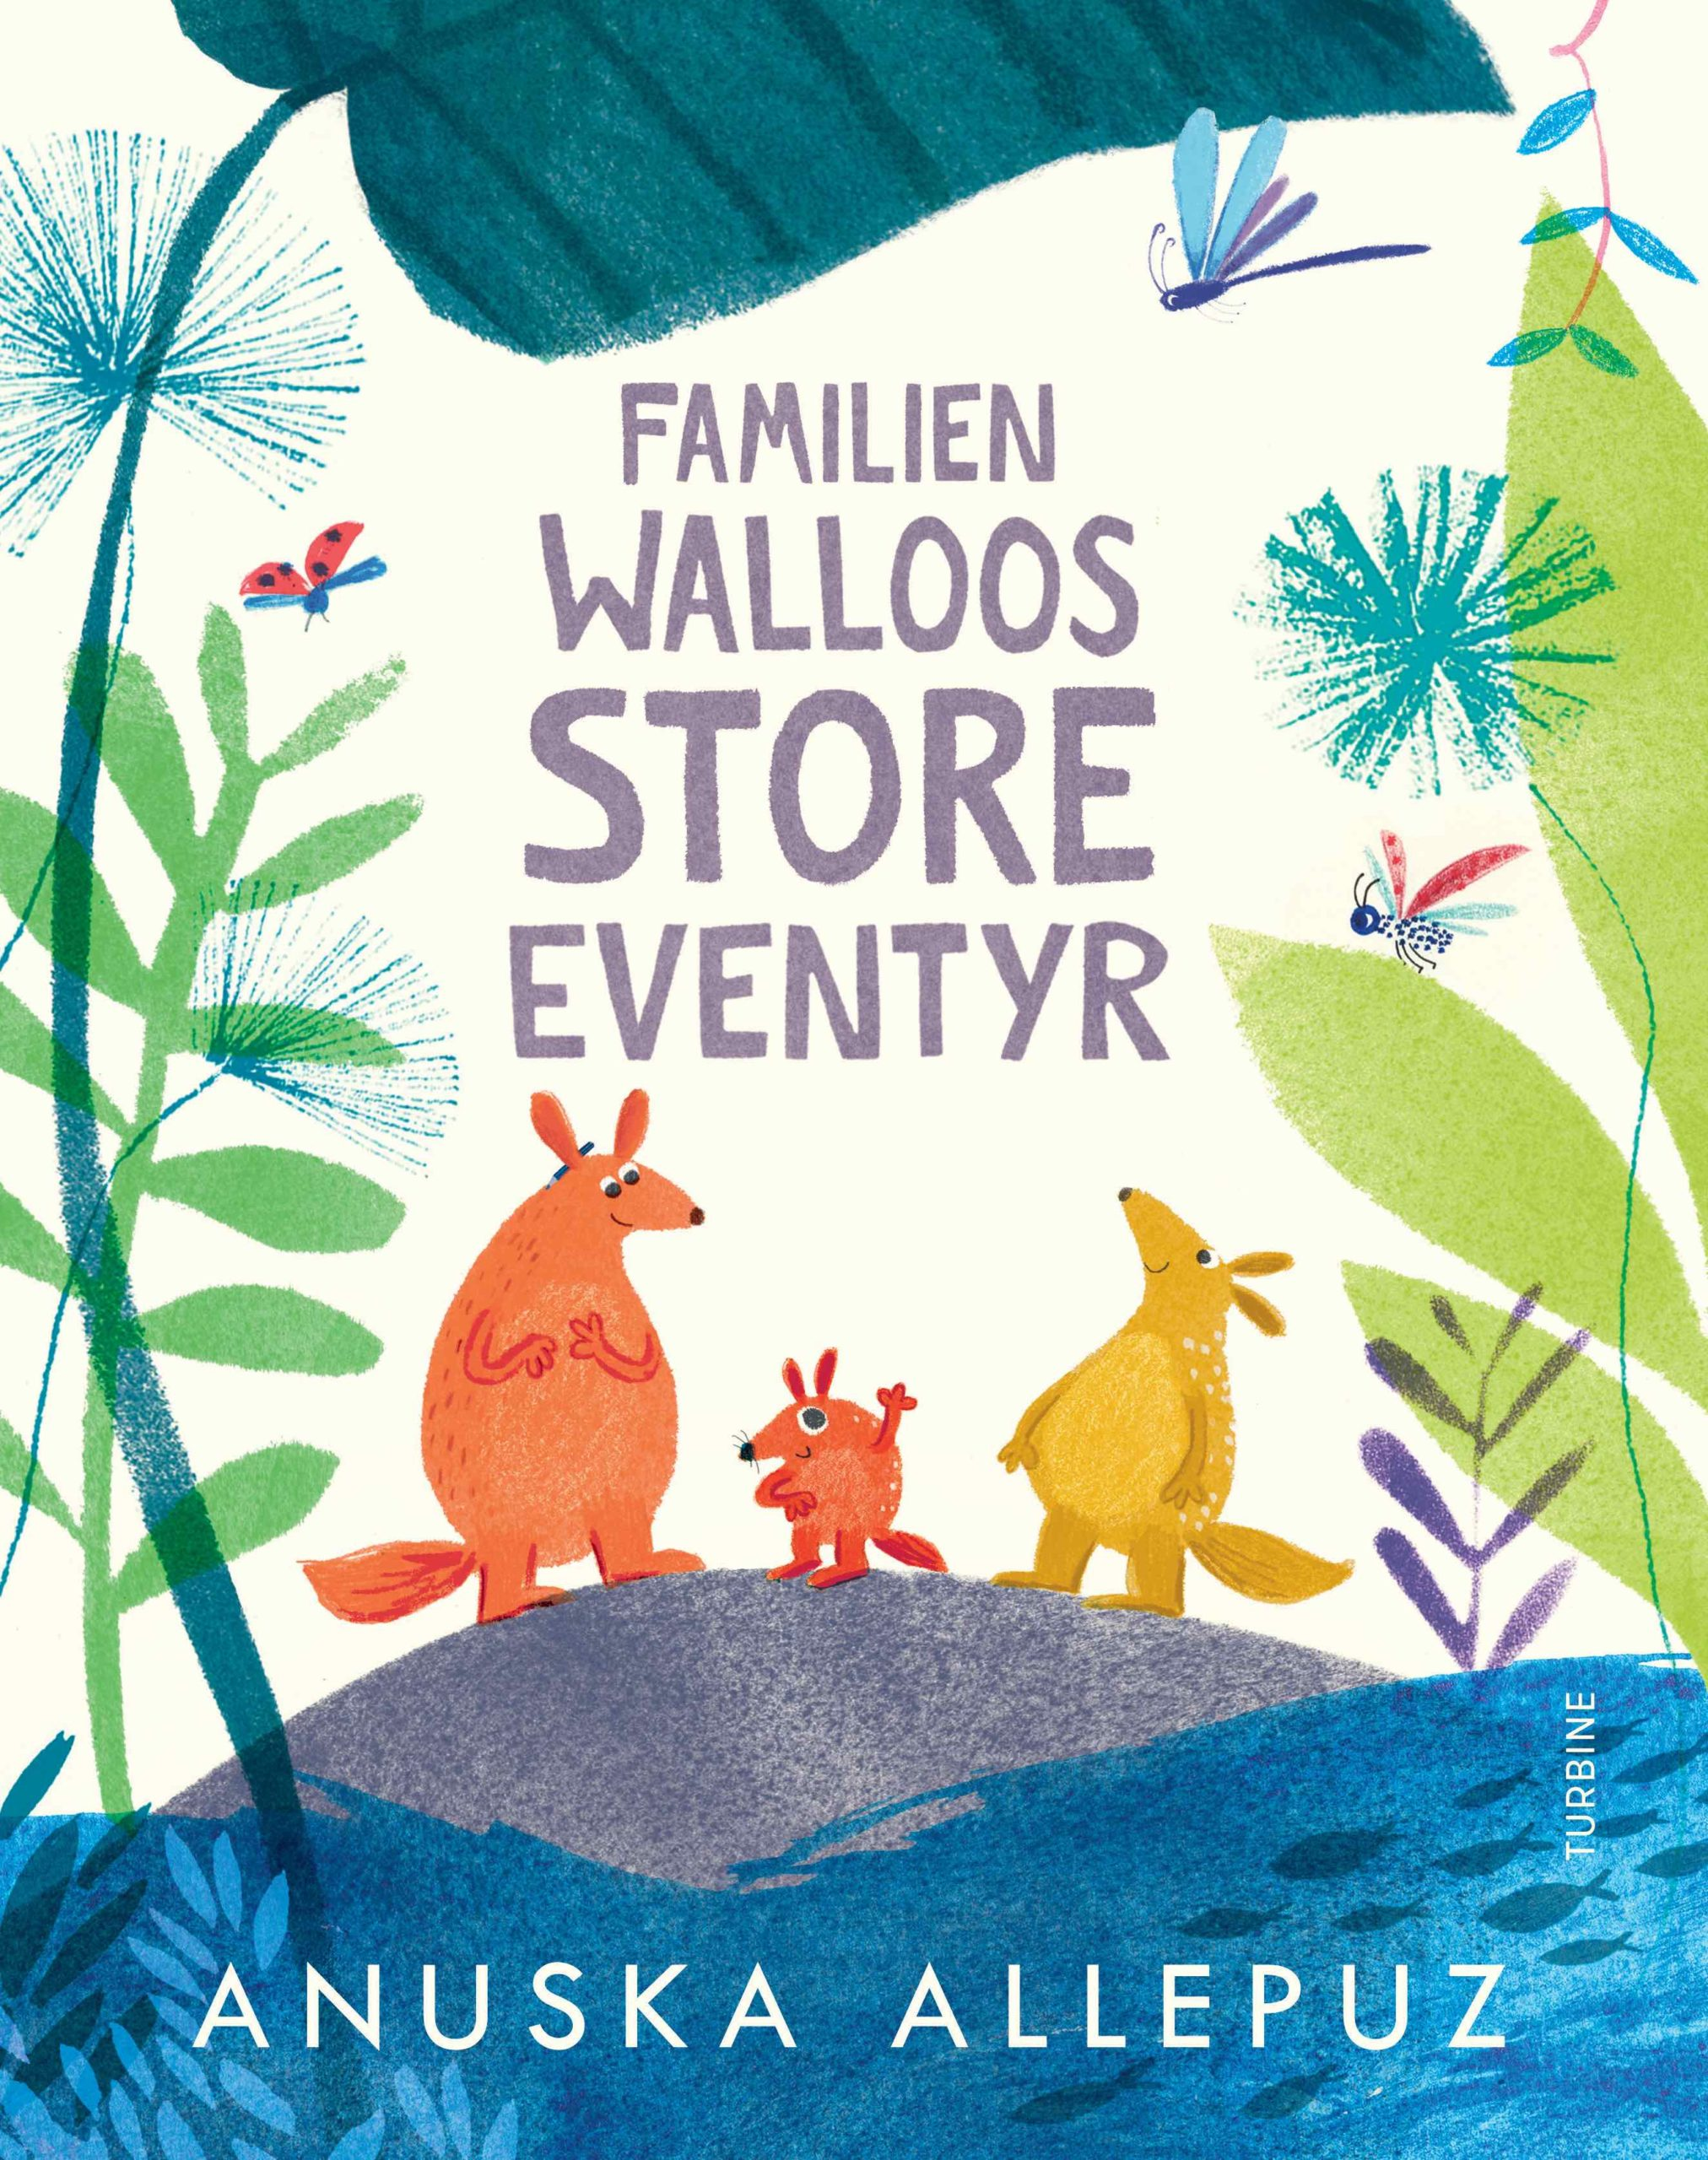 Familien Walloos store eventyr